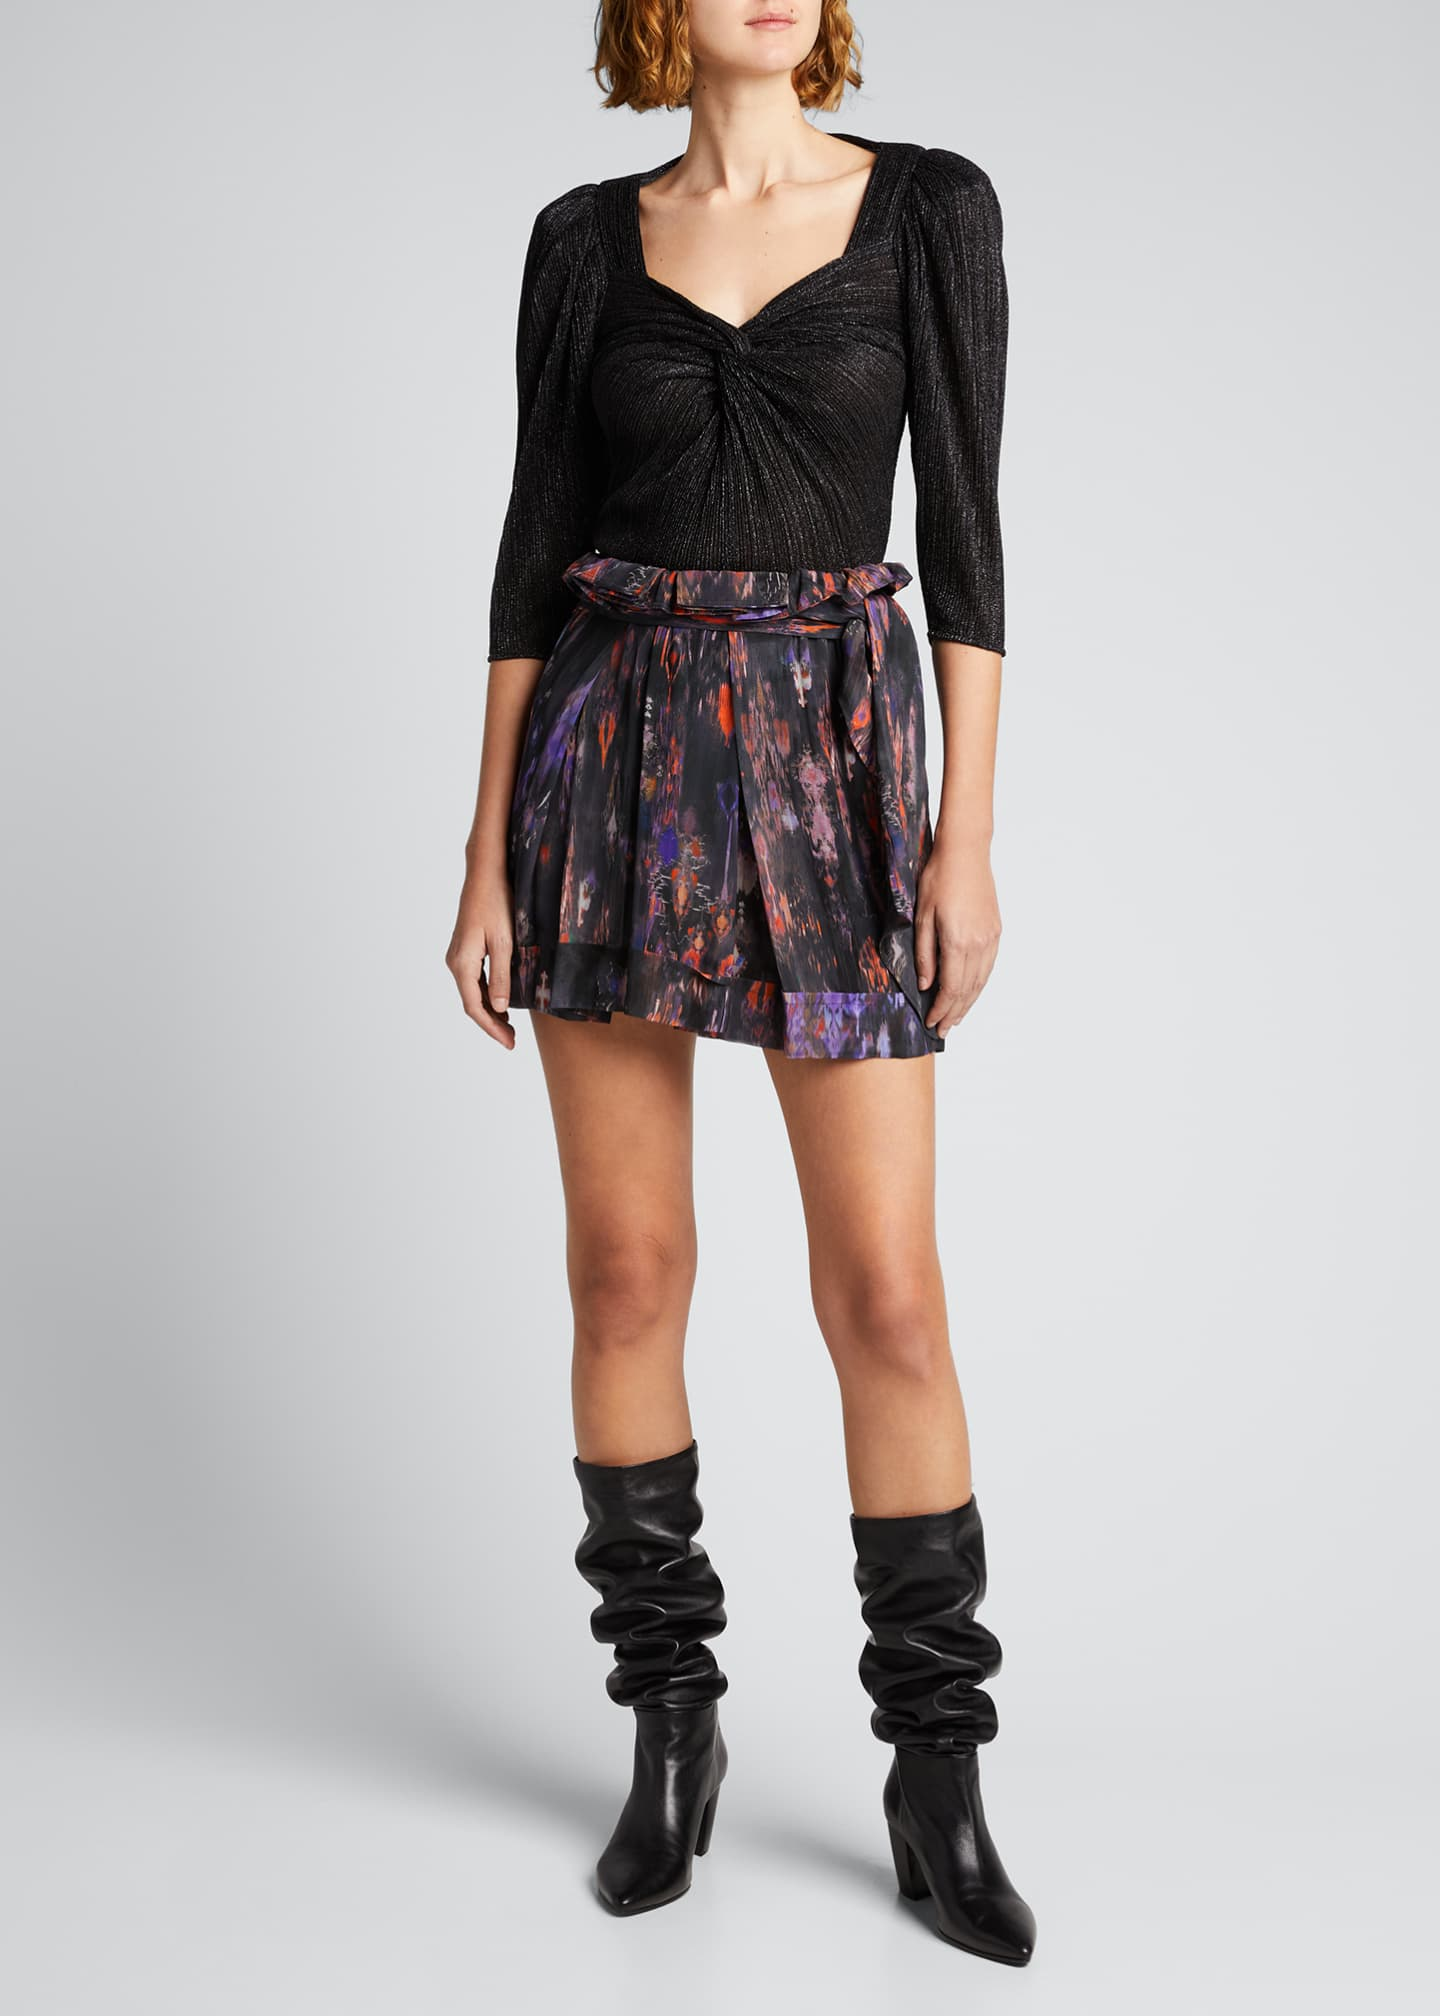 Image 1 of 5: Dollie Twisted Metallic Top